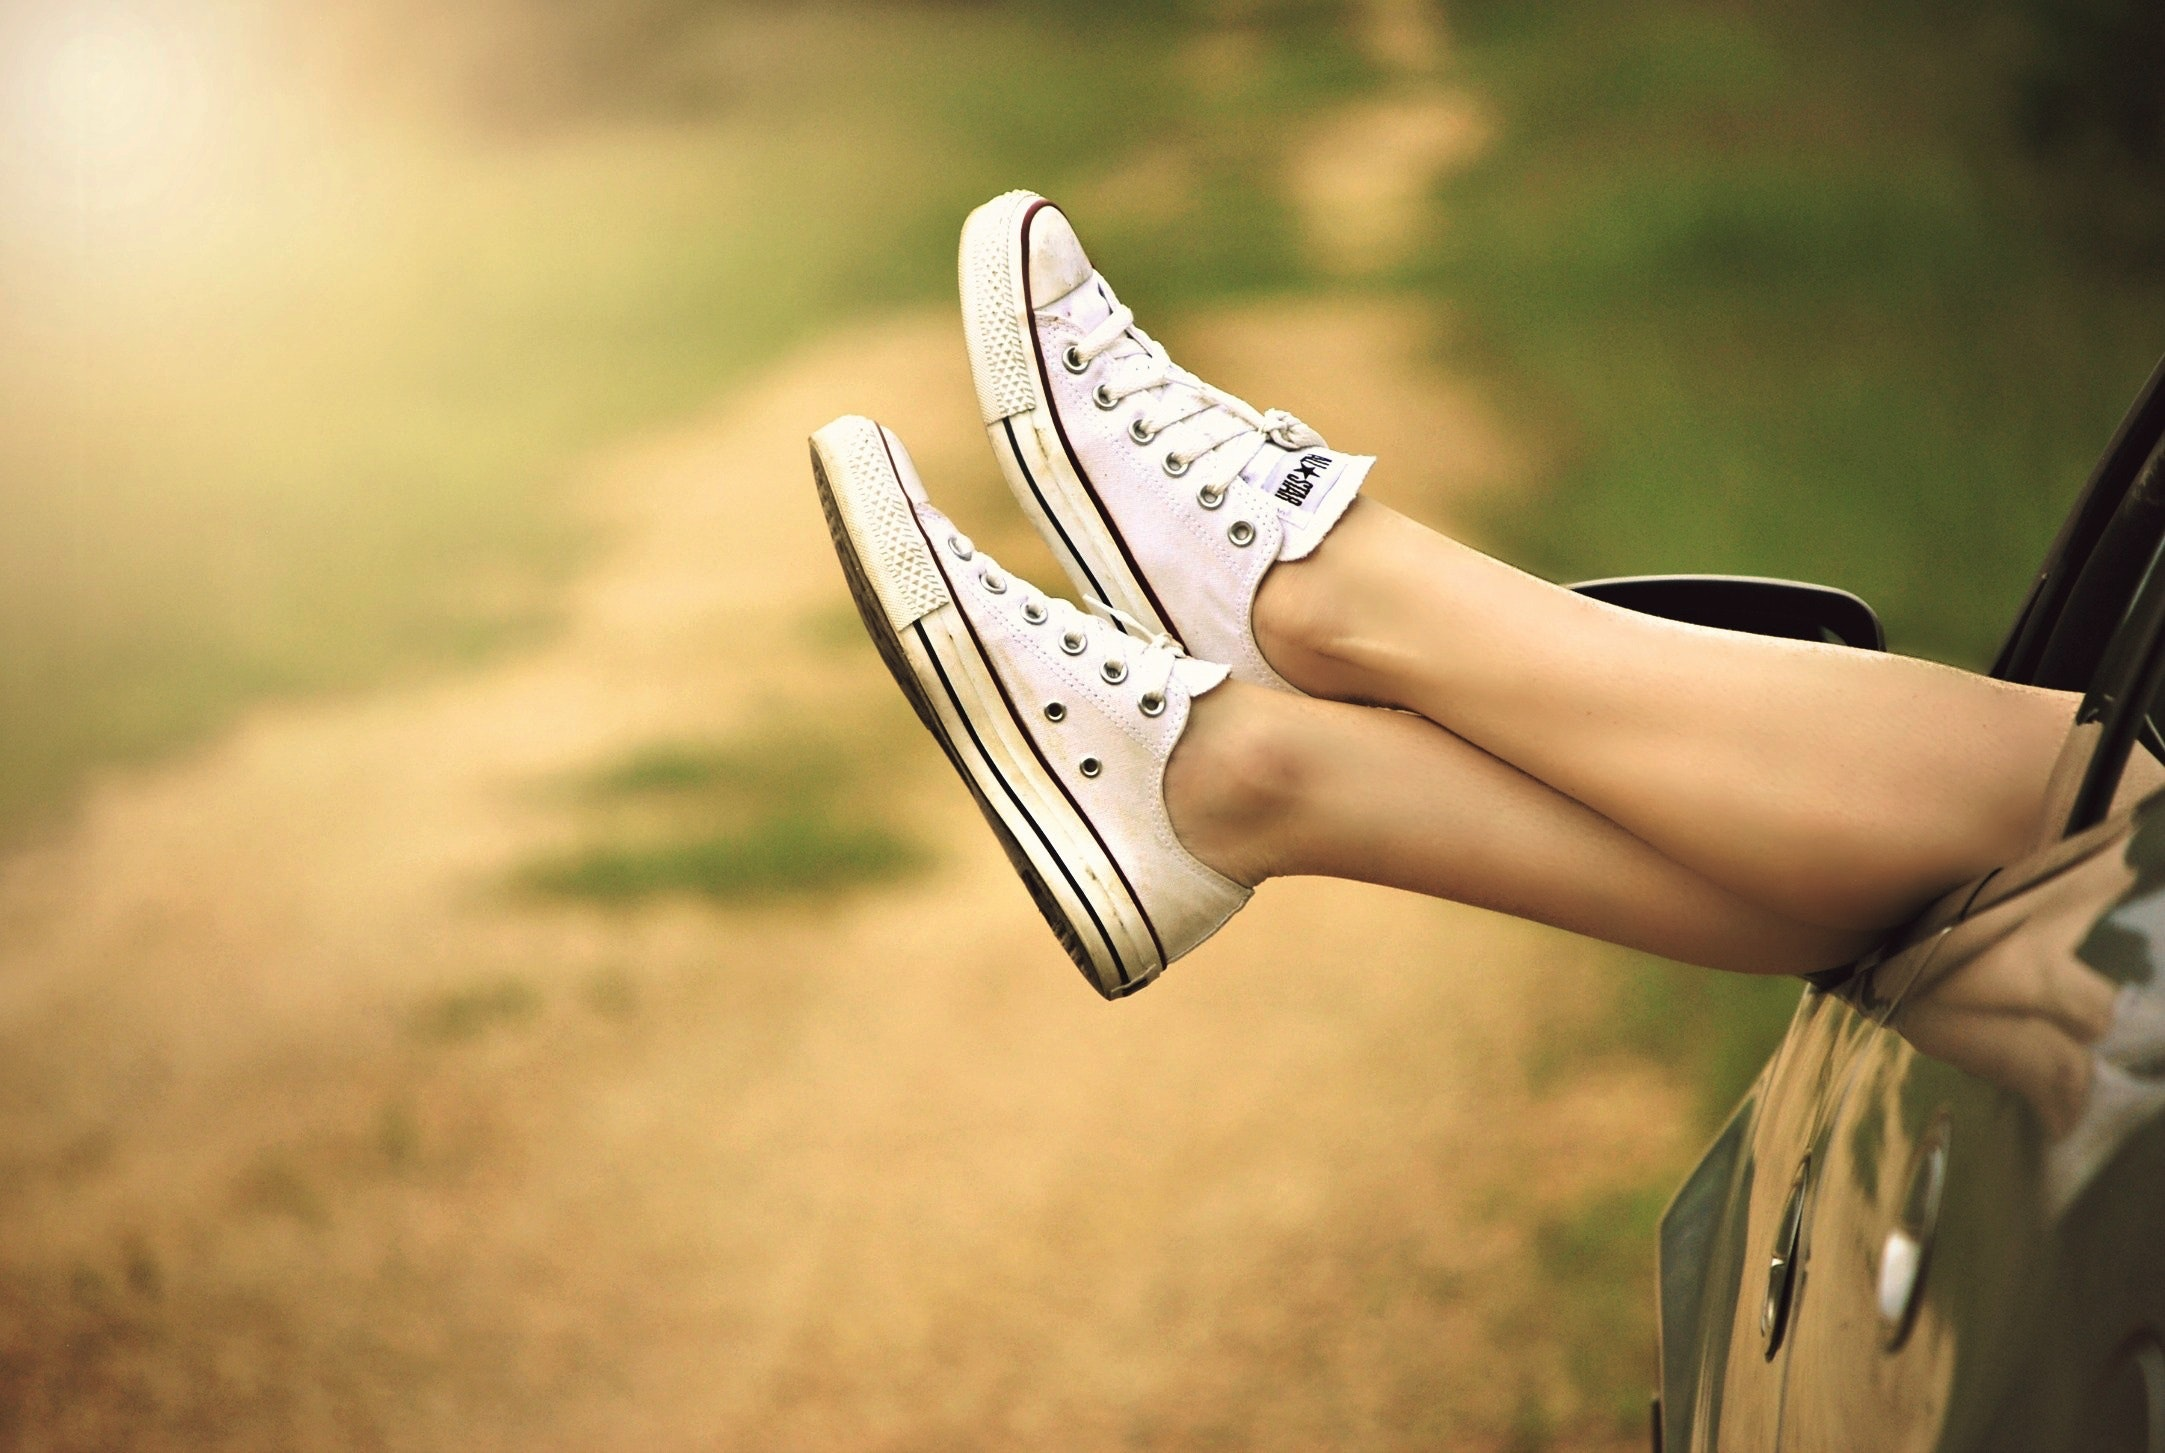 Person Showing Its Feet Wearing White Sneakers, Car, Lifestyle, Summer, Sneakers, HQ Photo